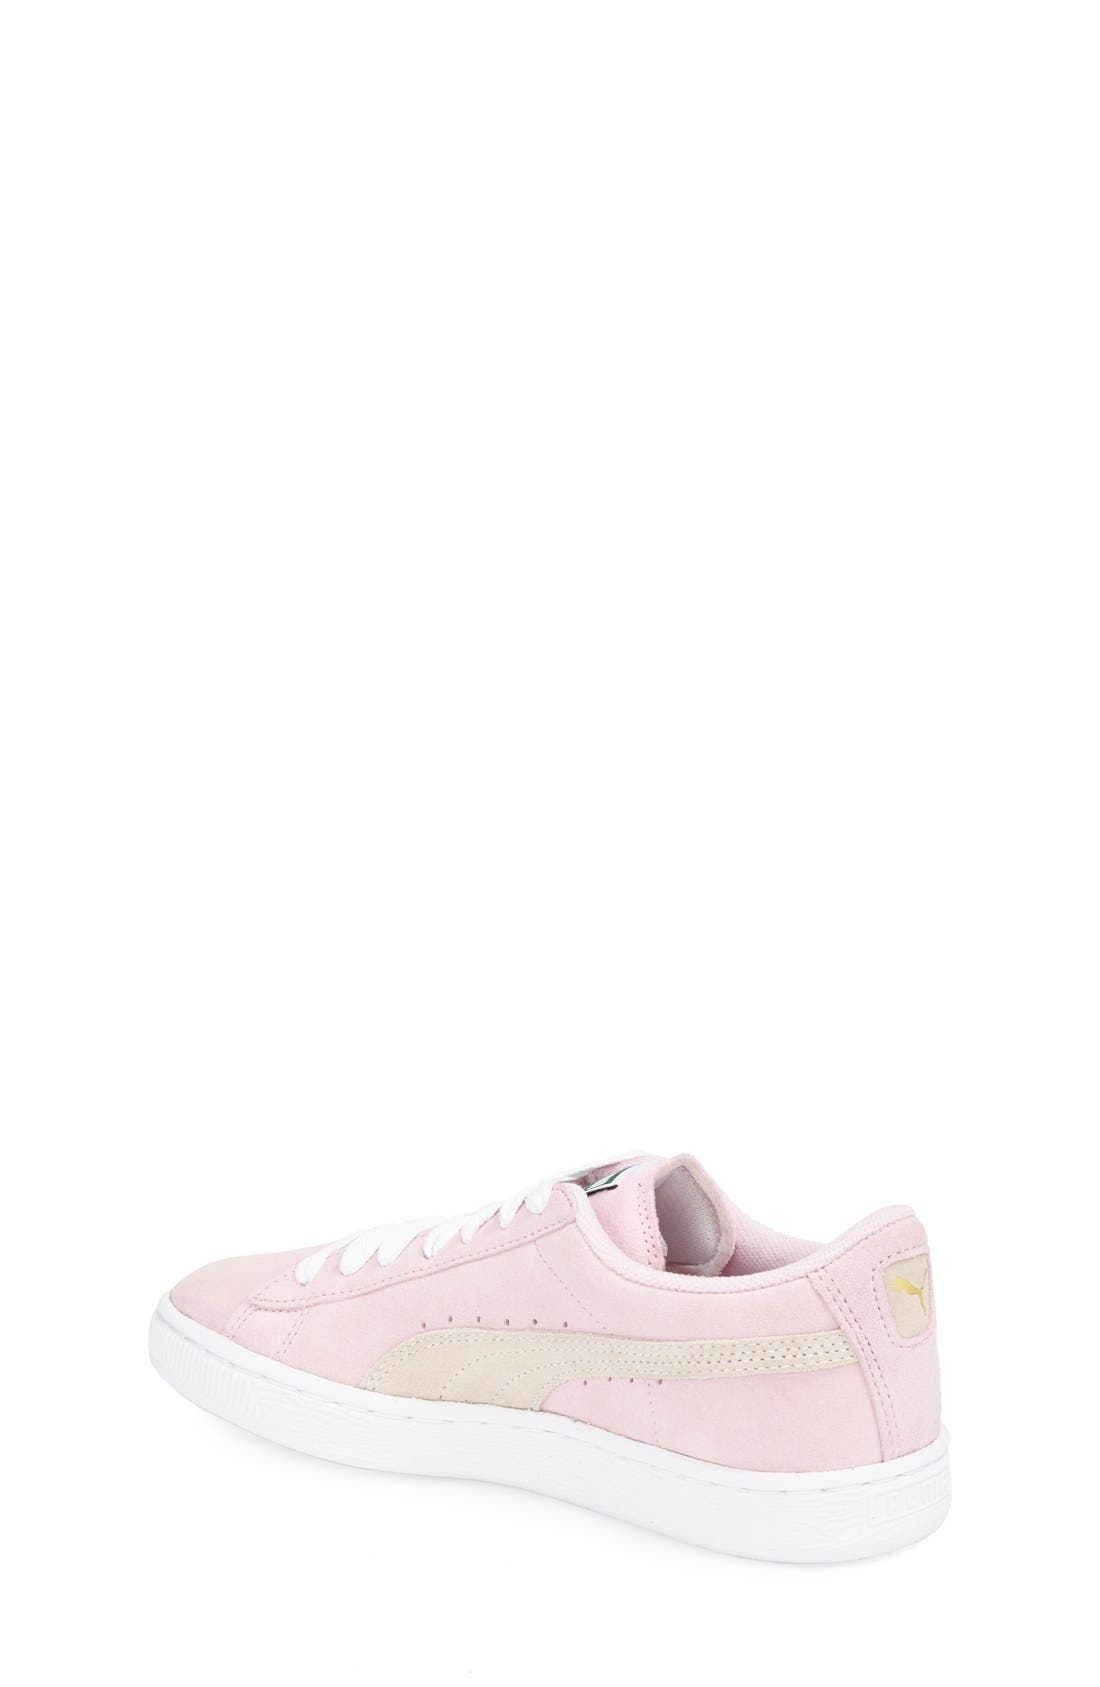 'Suede Jr.' Sneaker,                             Alternate thumbnail 2, color,                             Pink Lady/ White/ Team Gold